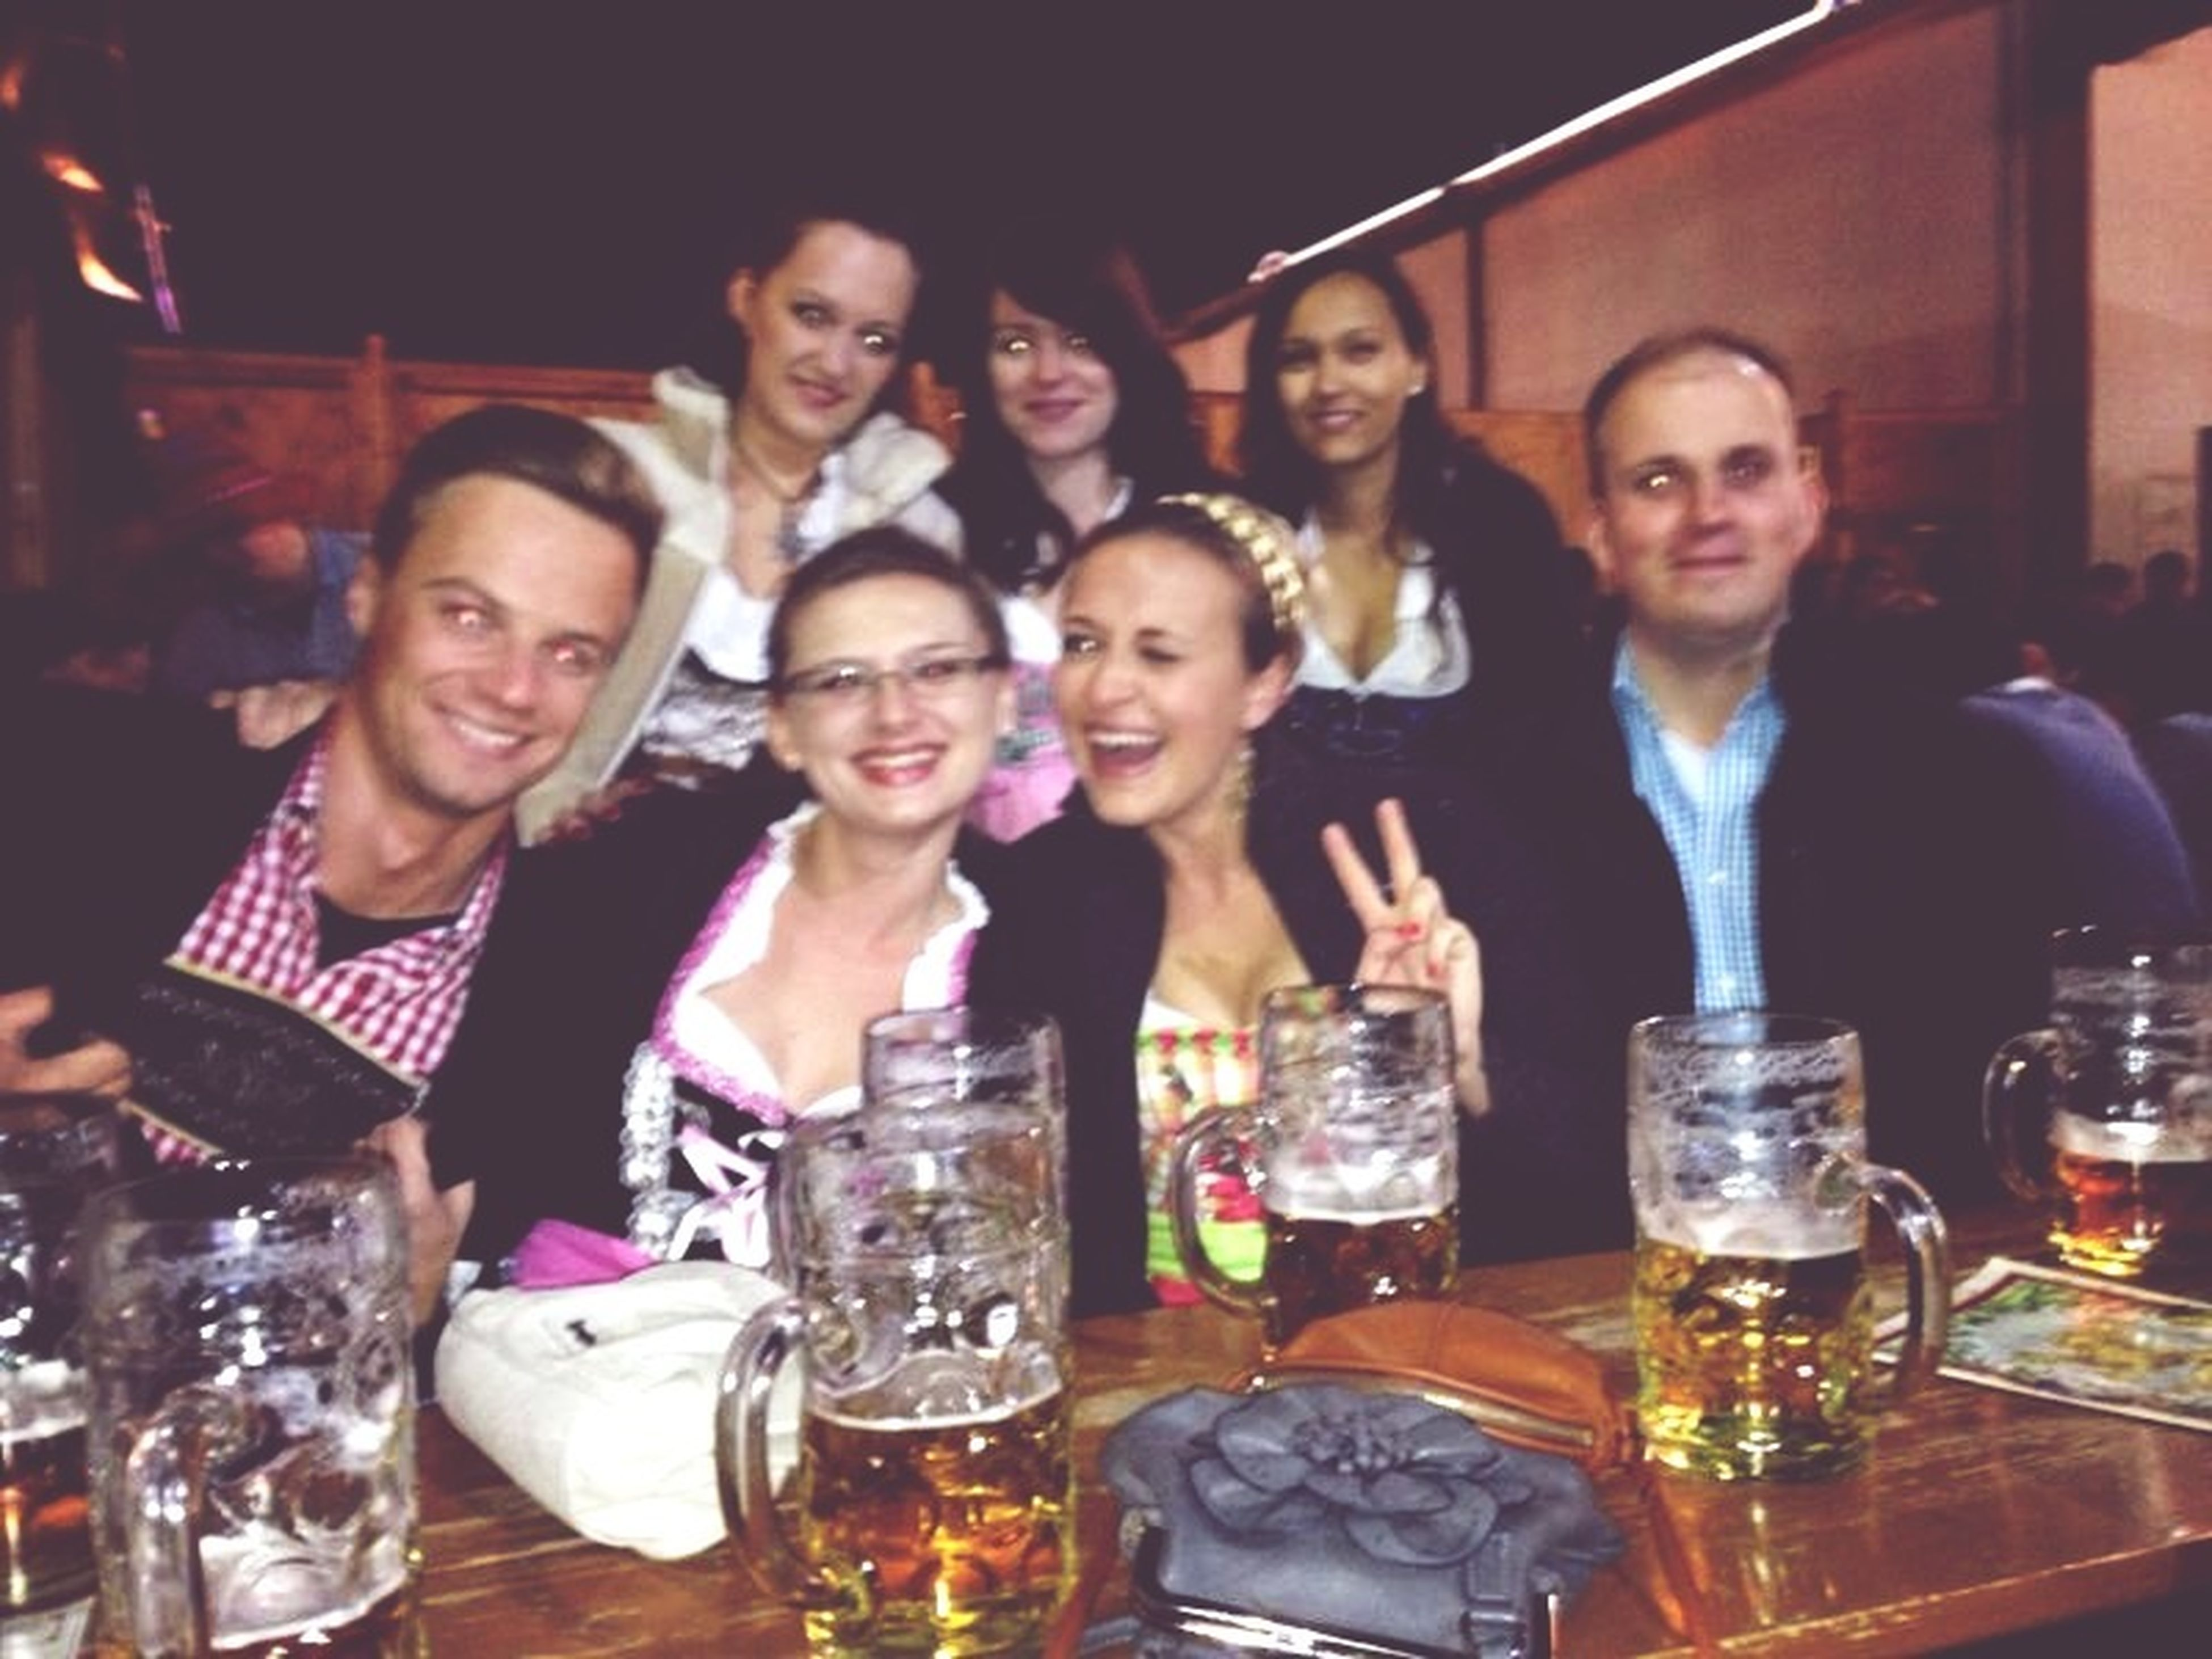 indoors, food and drink, lifestyles, togetherness, drink, leisure activity, restaurant, friendship, front view, table, happiness, bonding, portrait, refreshment, side by side, celebration, person, looking at camera